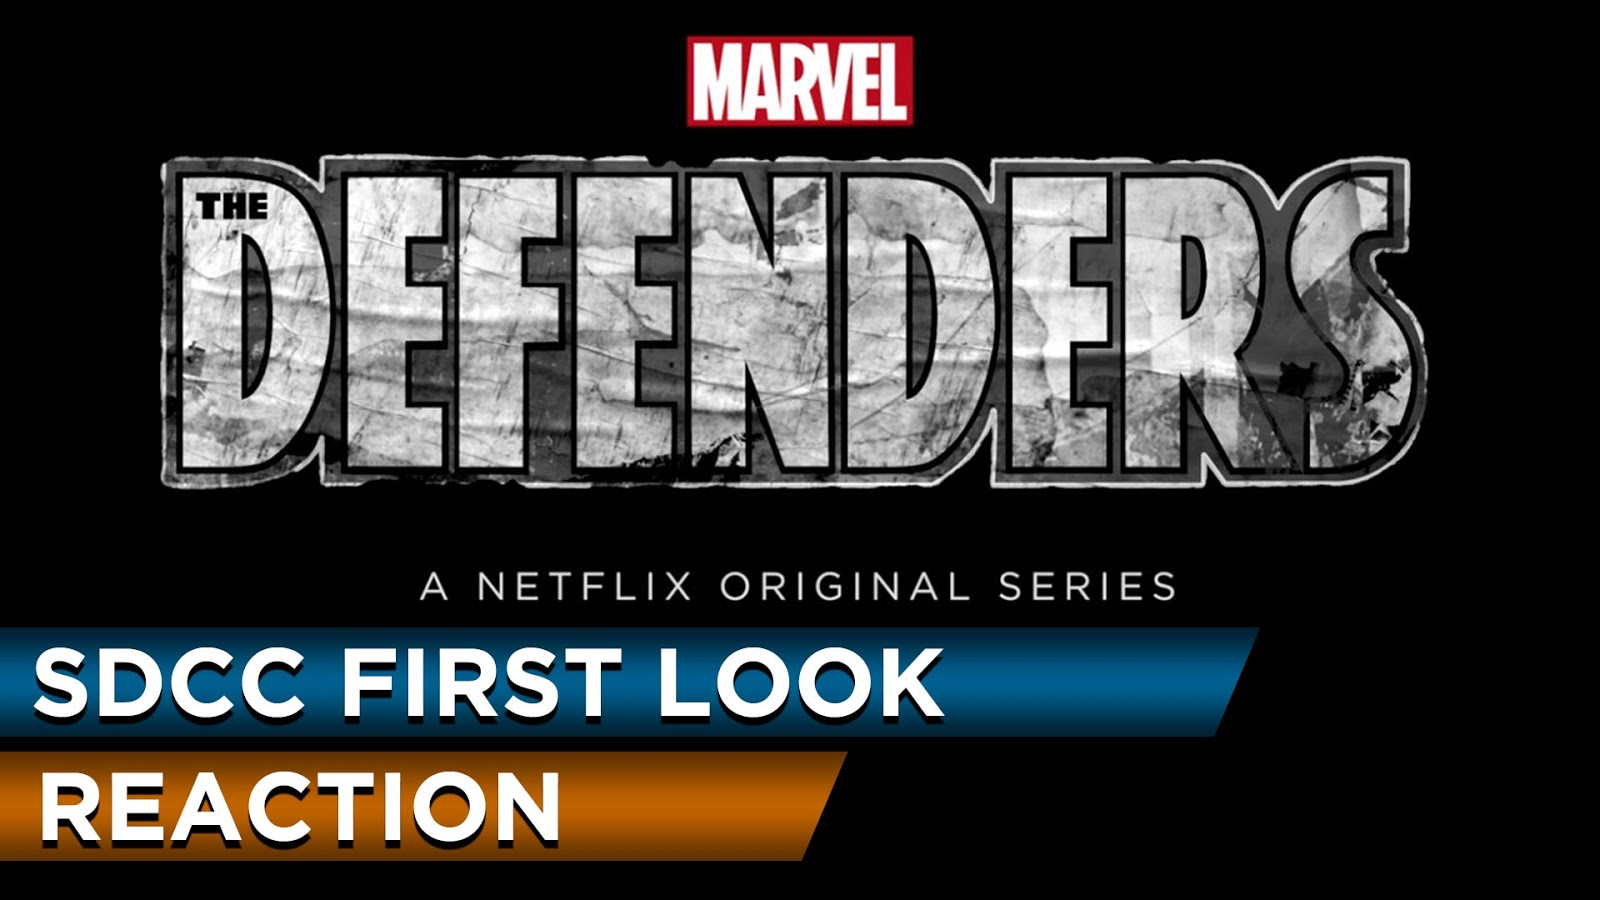 reaction to trailer for Marvel's The Defenders